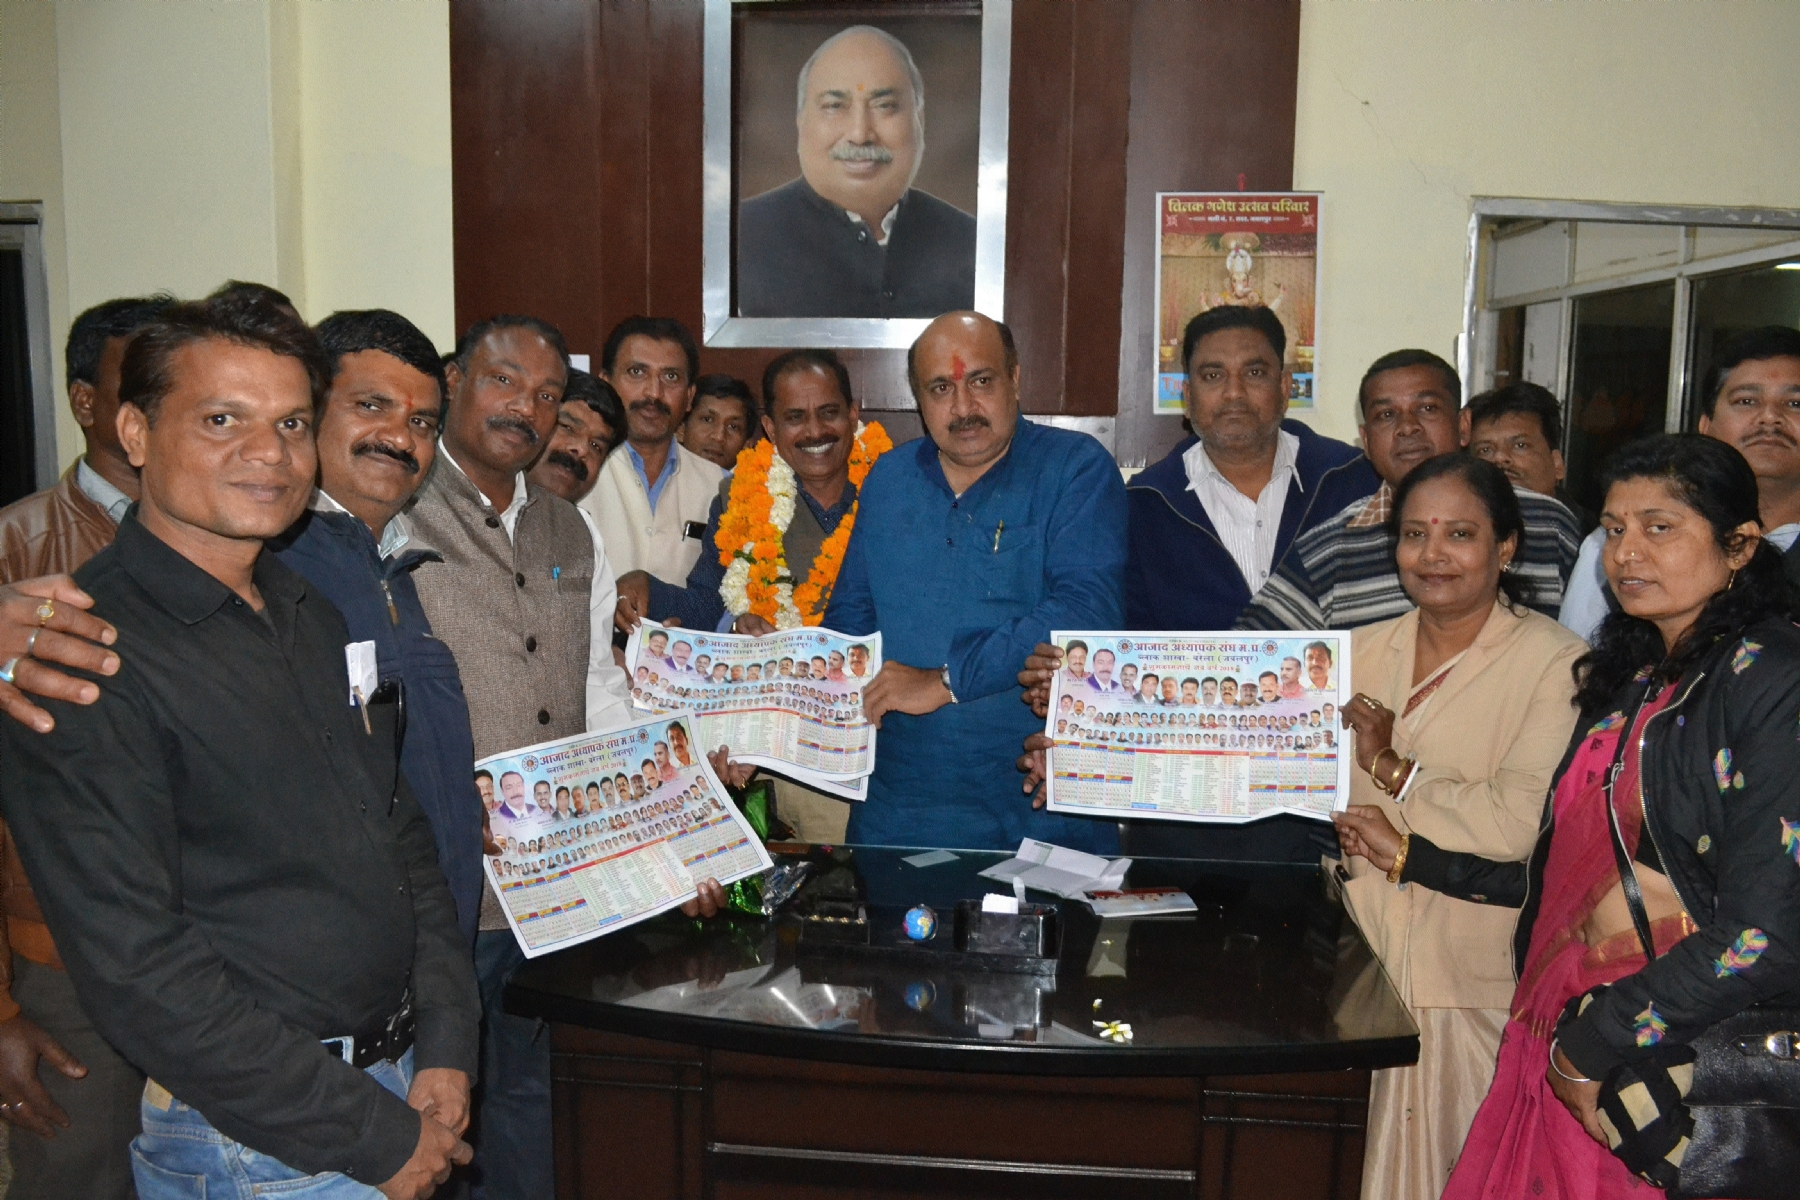 Calendar of Azad Adhyapak Sangh released